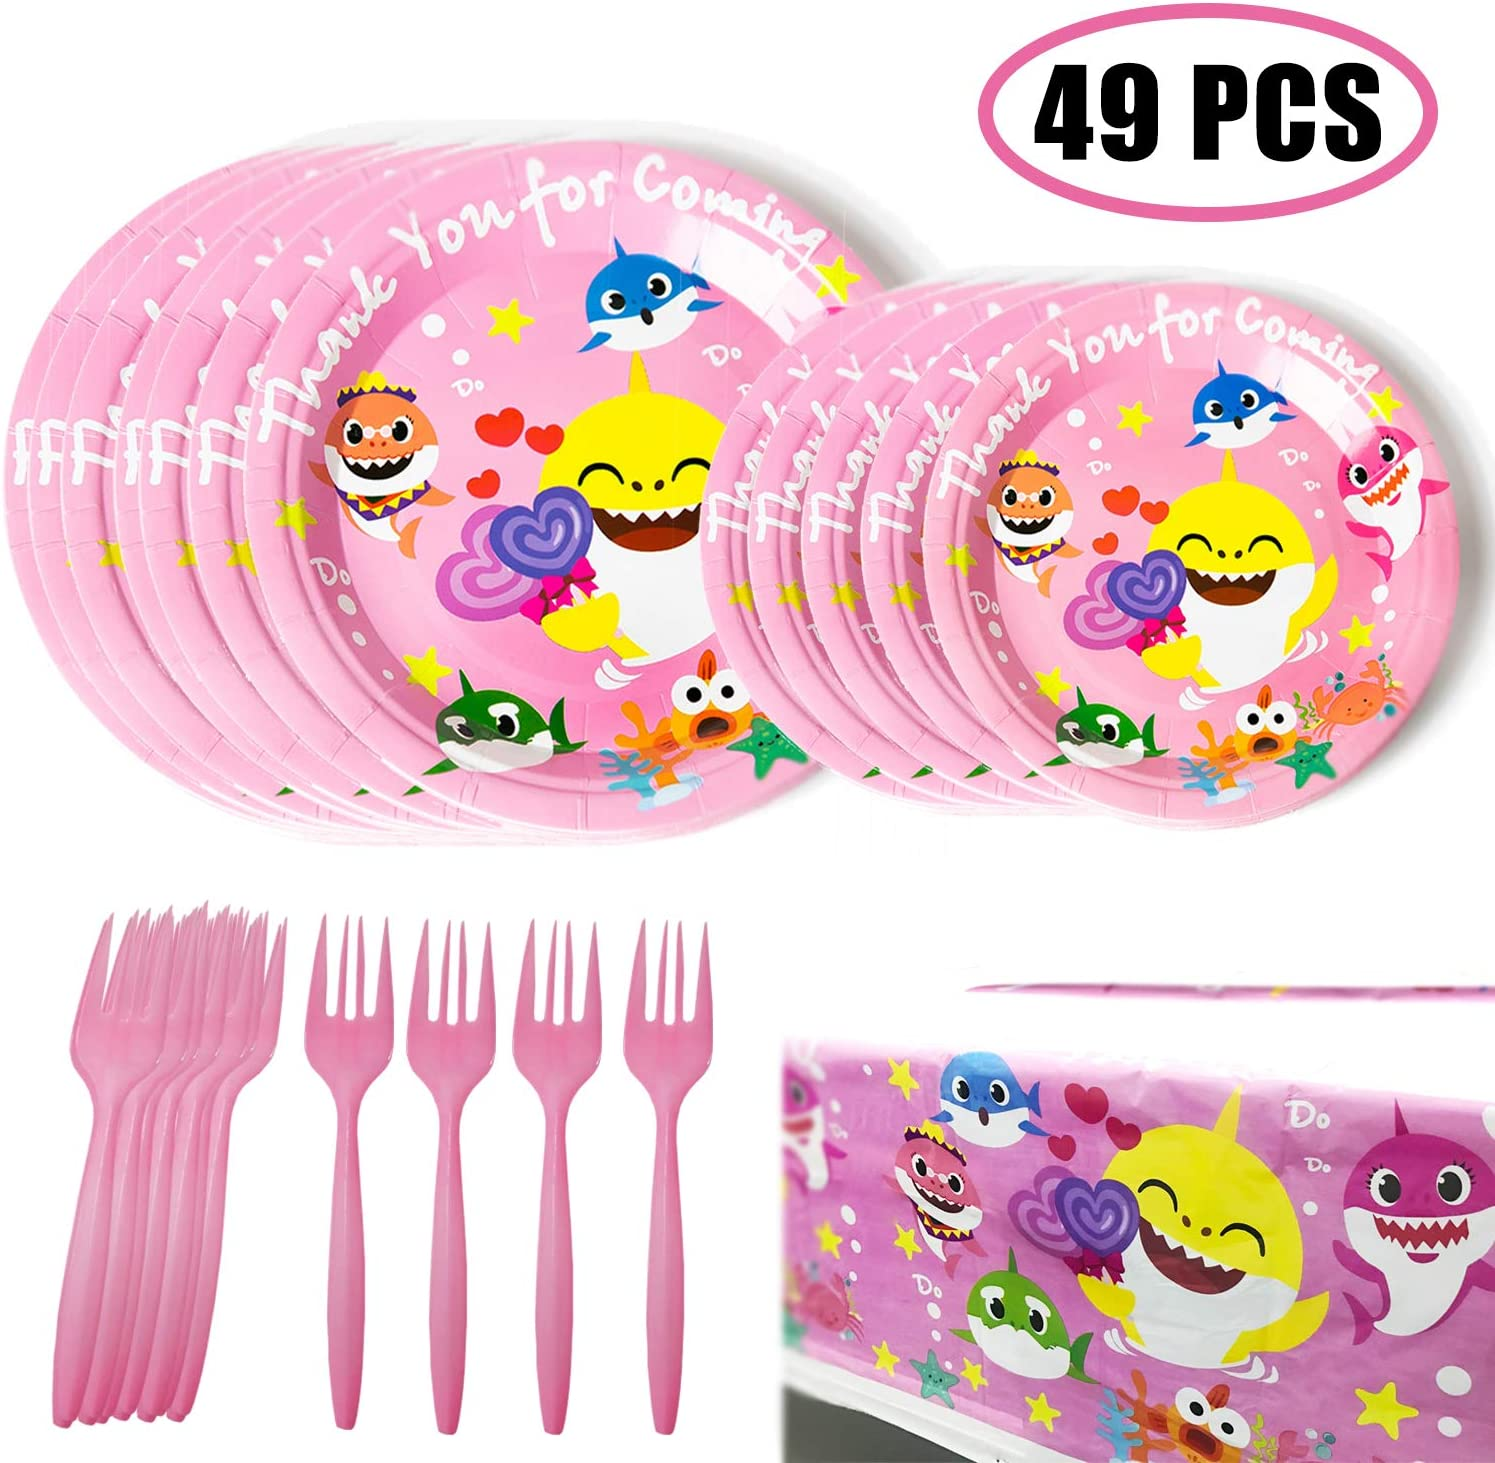 49 Shark Party Supplies, Birthday Party Dessert Set, 32 pcs 9 + 7 Inch Party Paper Plates, 16 pcs Shark Forks and 1 pcs Tablecover - Party Kit for Kids Birthday Shark Theme Baby Shower(16 Guests)